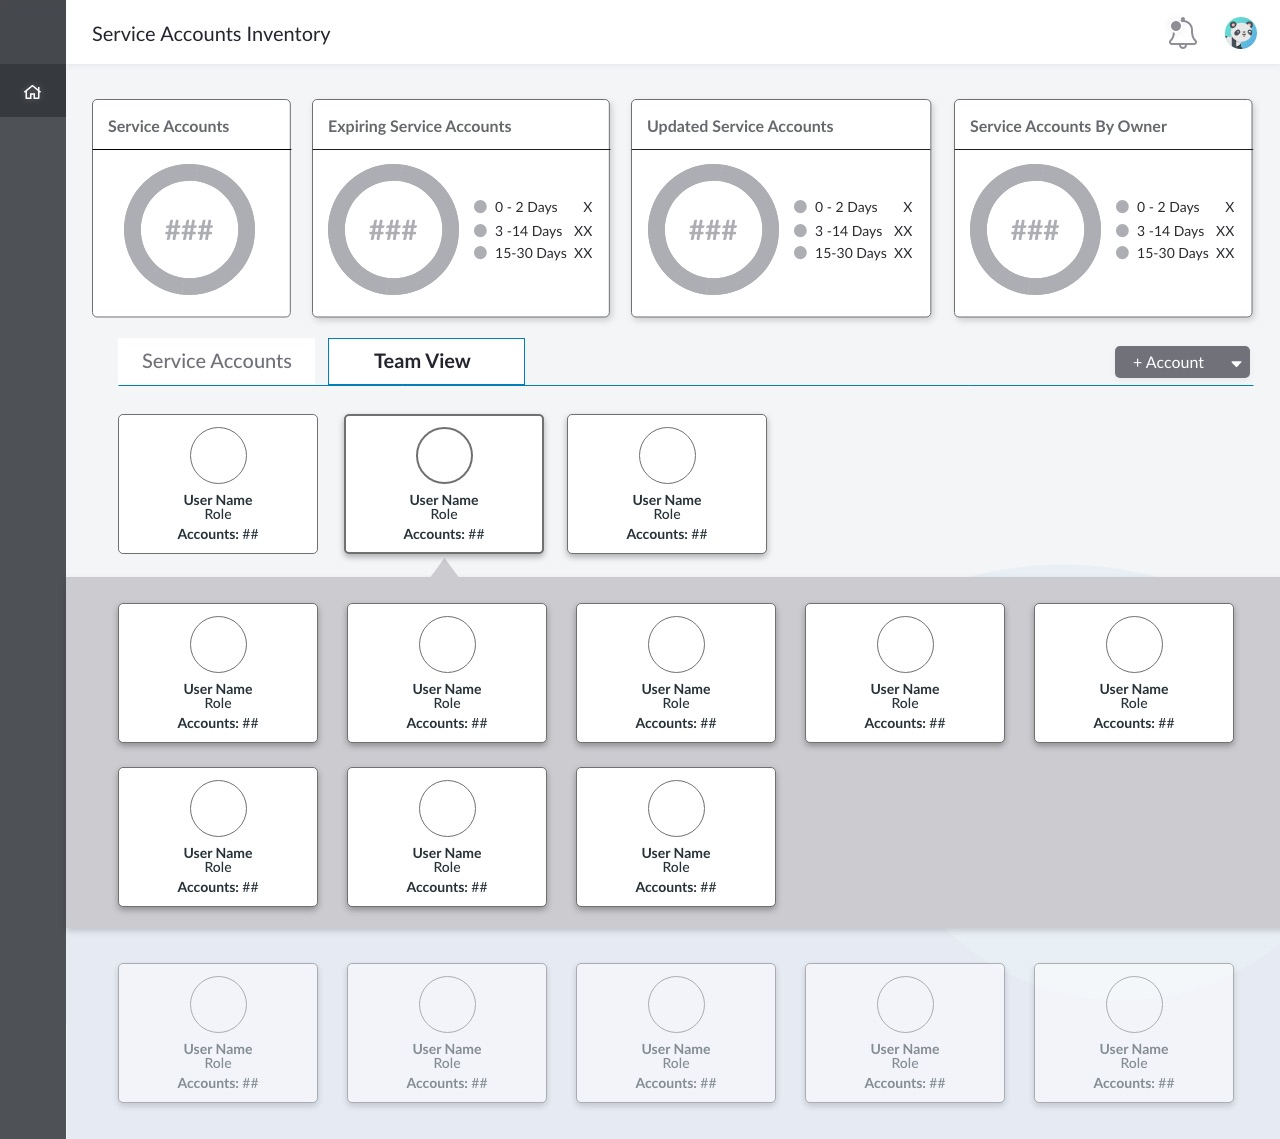 Service Accounts Inventory - Manager View / Wireframe